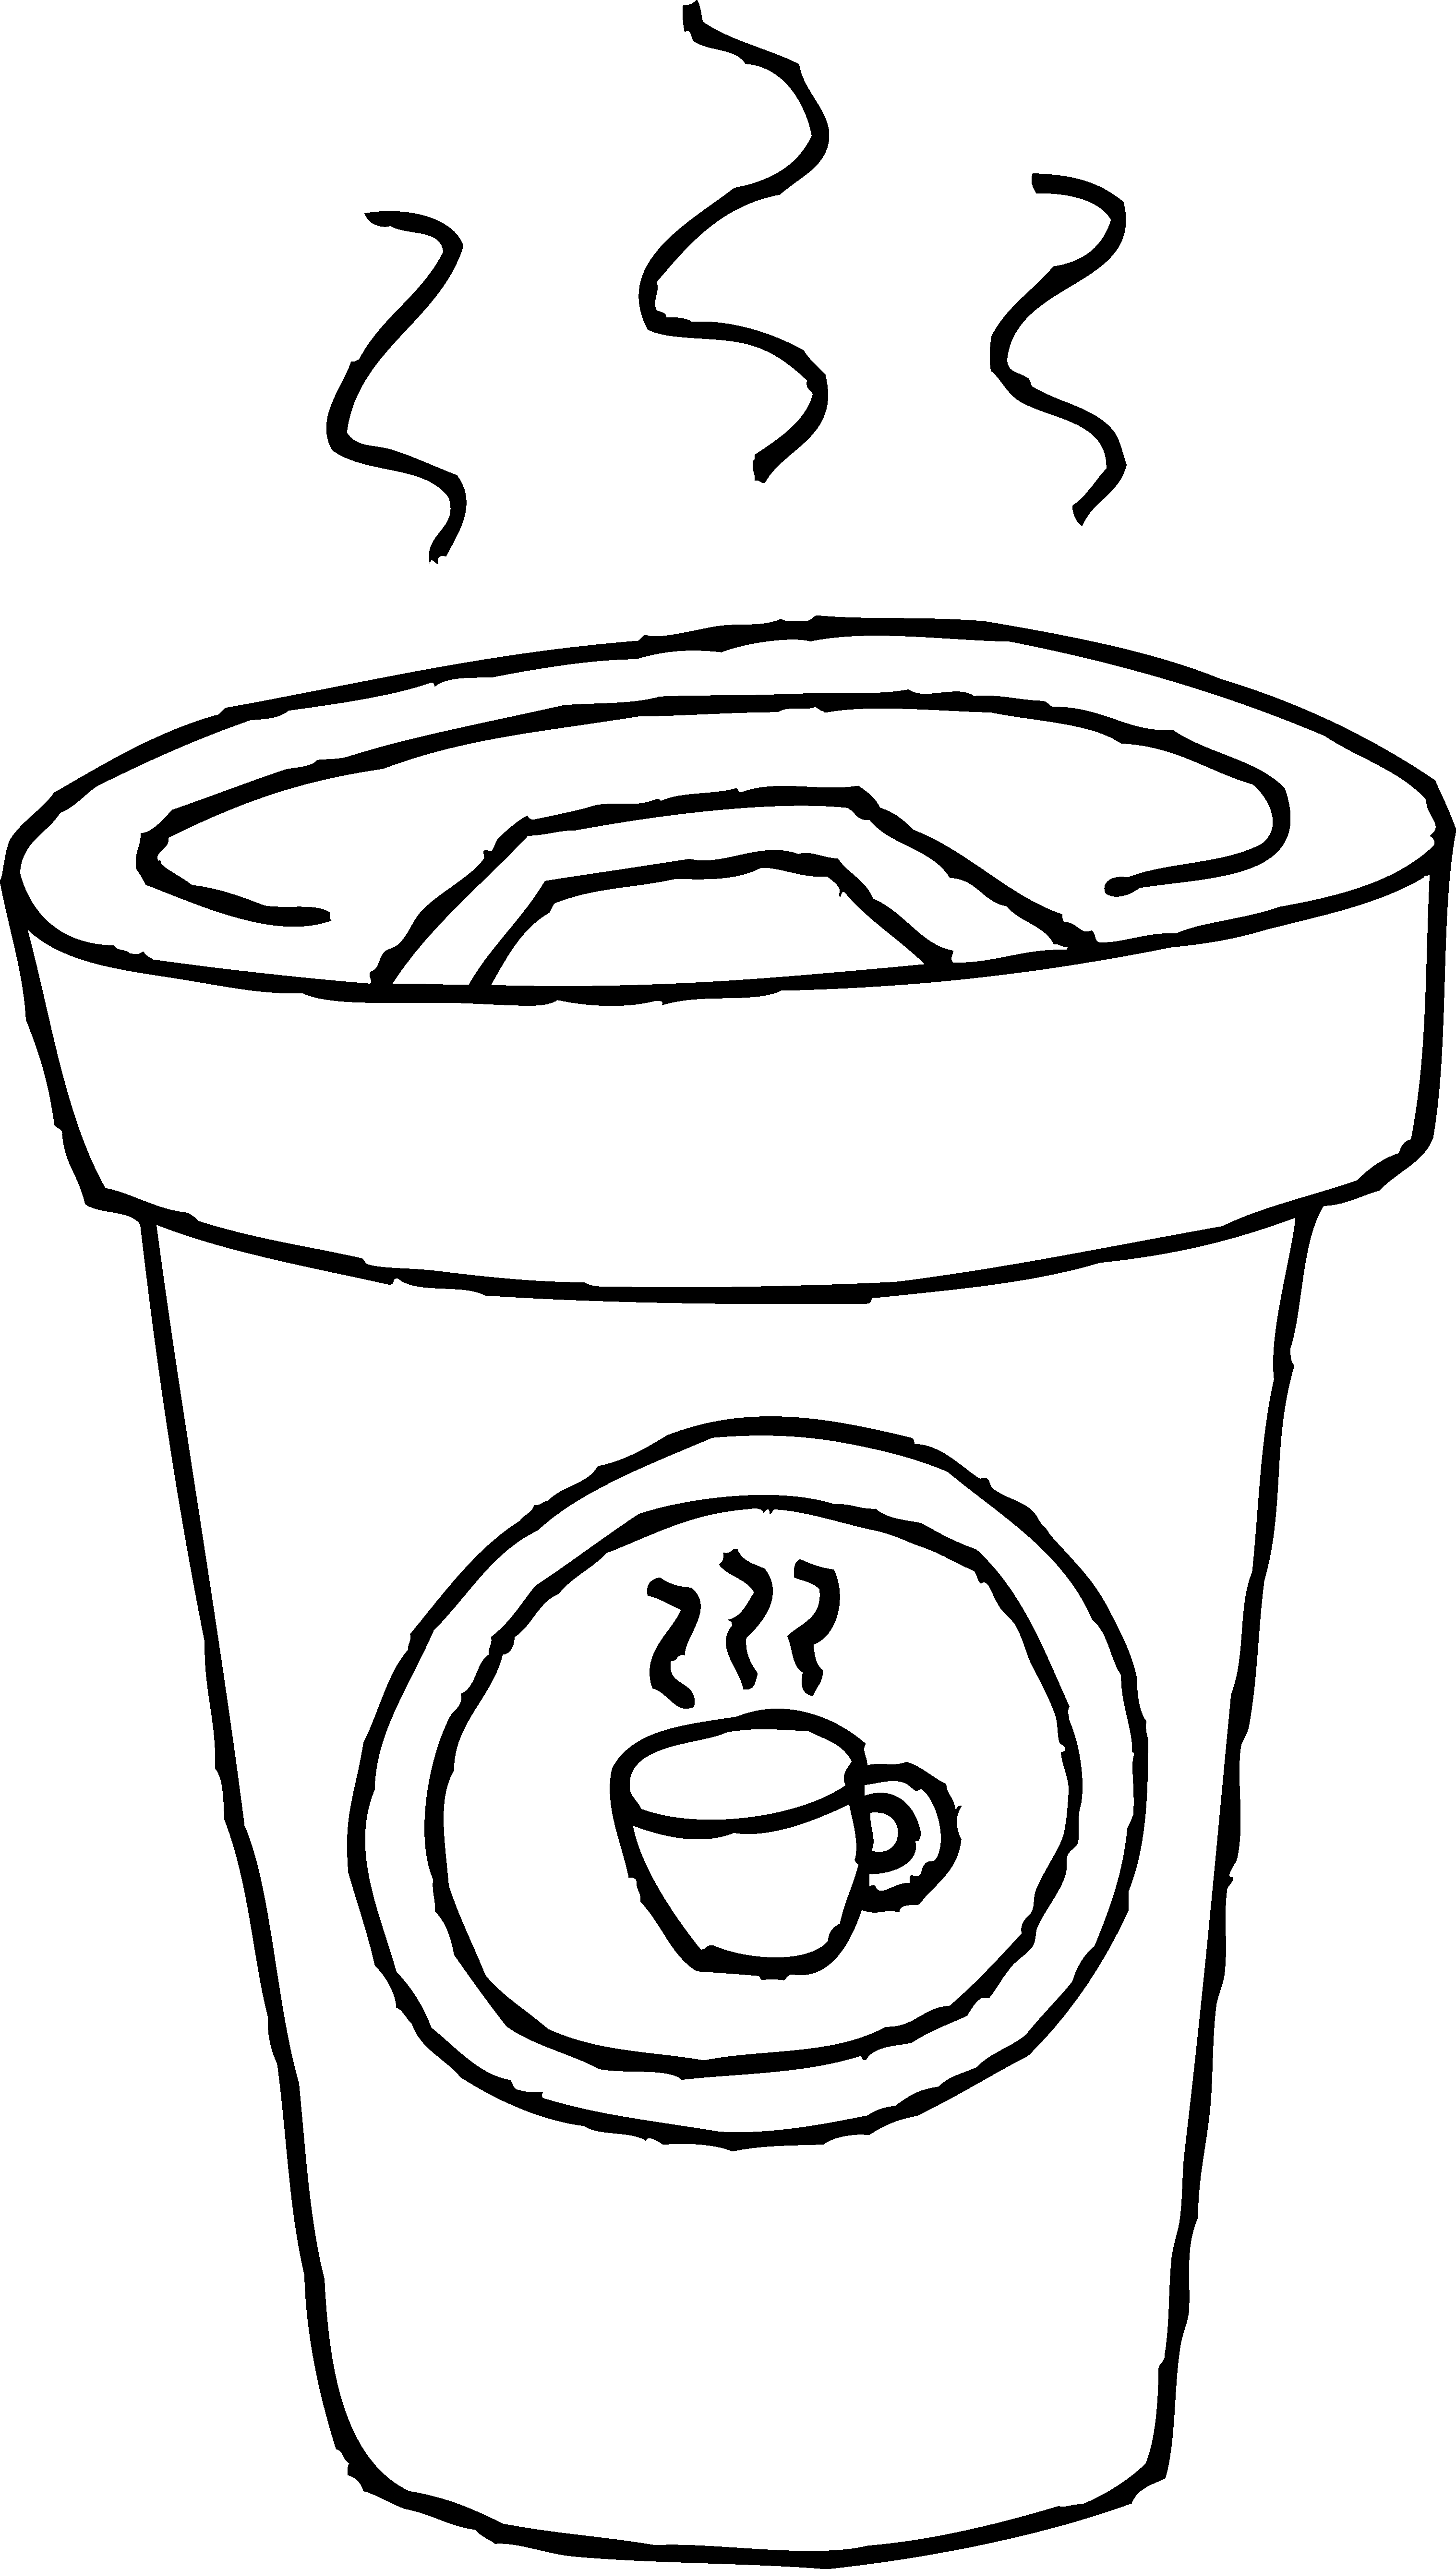 Coffee clipart line art. Cup of coloring page